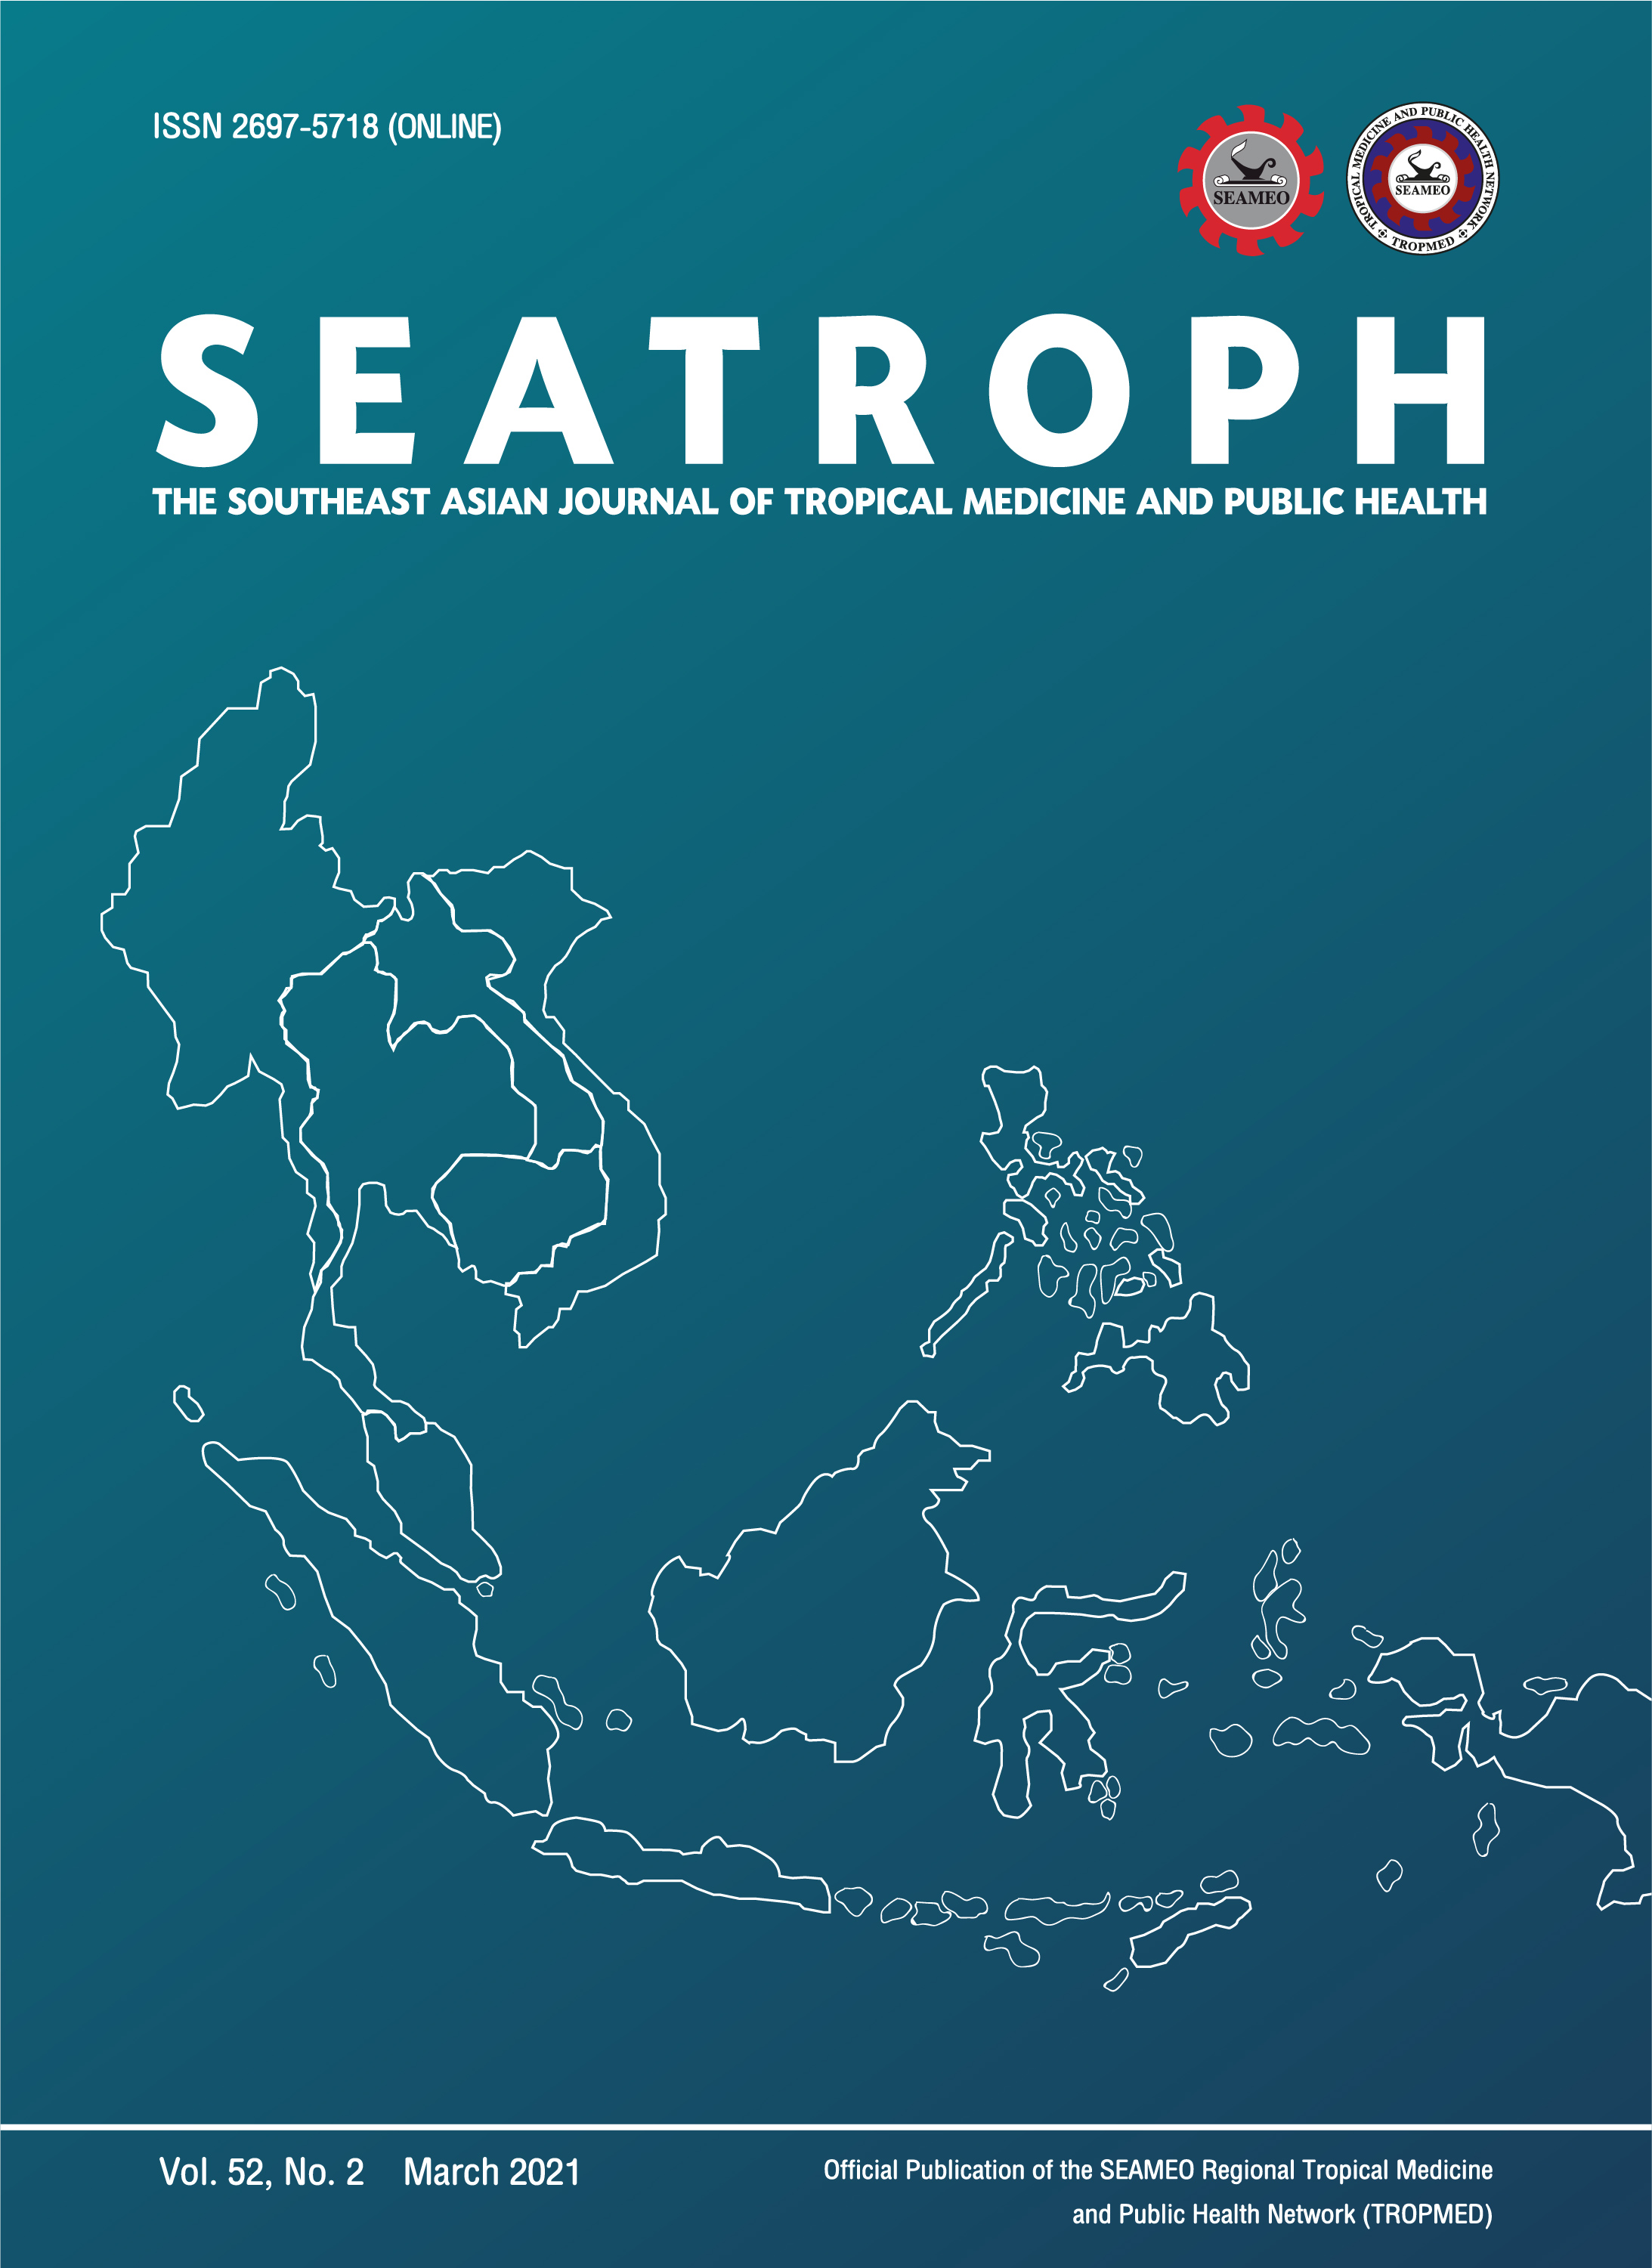 View Vol. 52 No. 2 (2021): THE SOUTHEAST ASIAN JOURNAL OF TROPICAL MEDICINE AND PUBLIC HEALTH